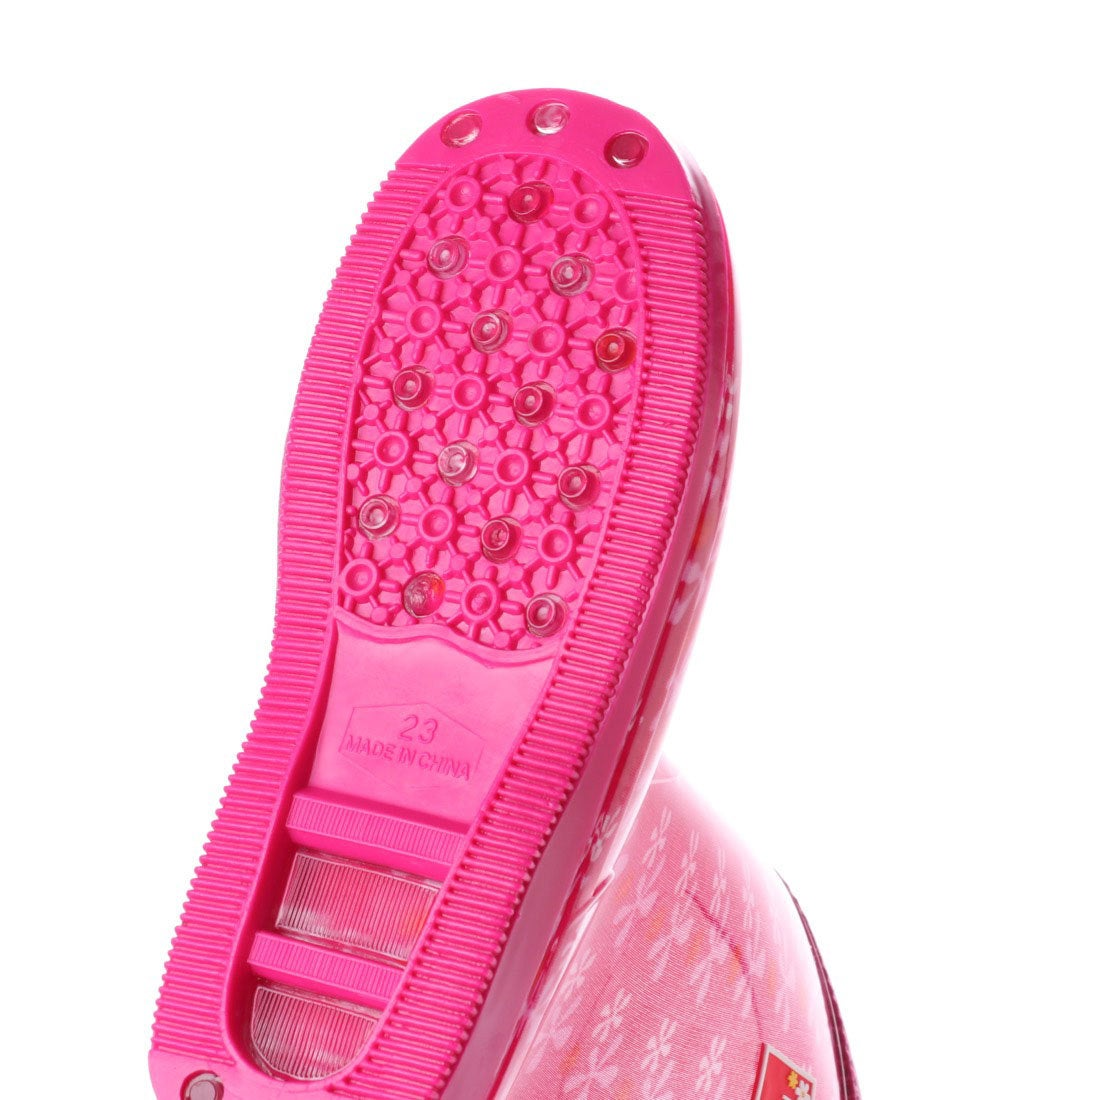 350882283d22a パーソンズキッズ PERSON S KIDS レインブーツ 長靴 (PINK) -靴 ...